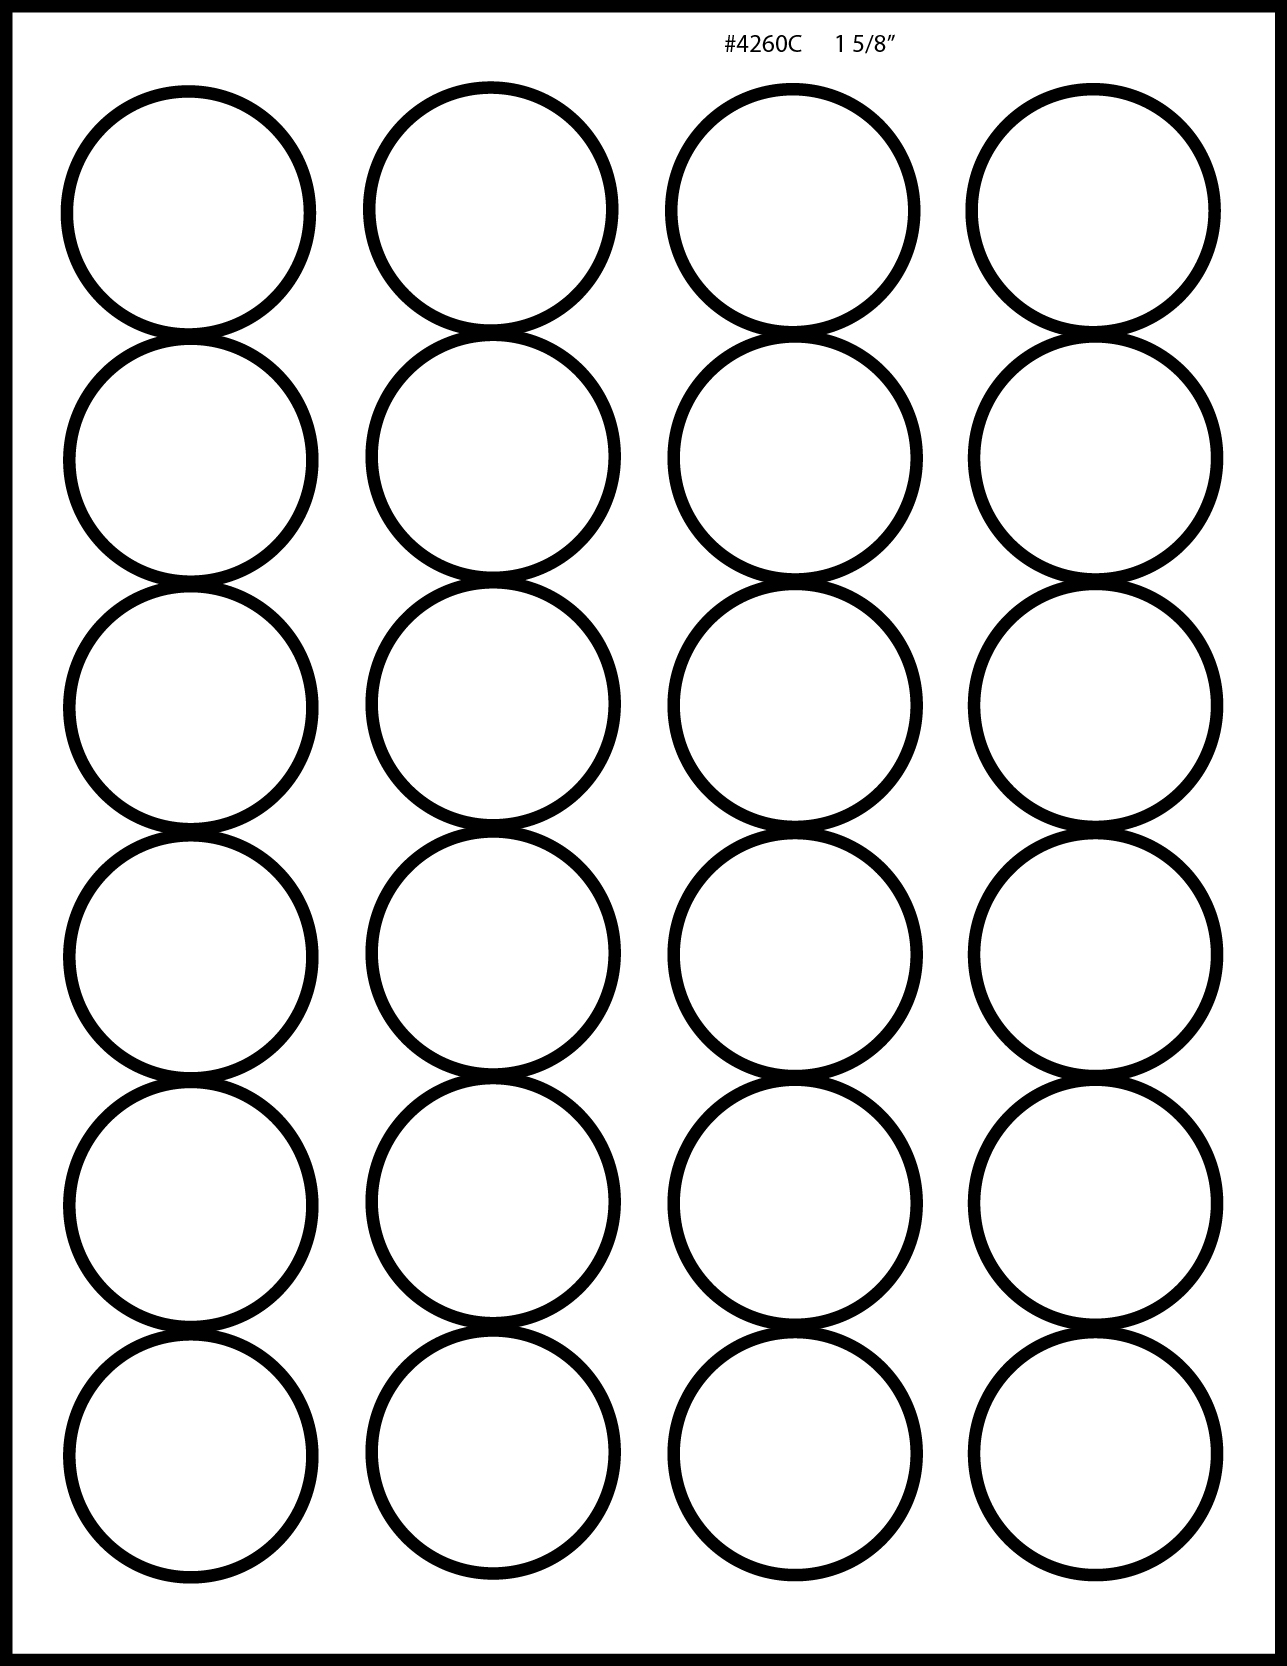 Glossy white inkjet printable labels 50 sheets 1 5 8 inch for 5 inch round labels